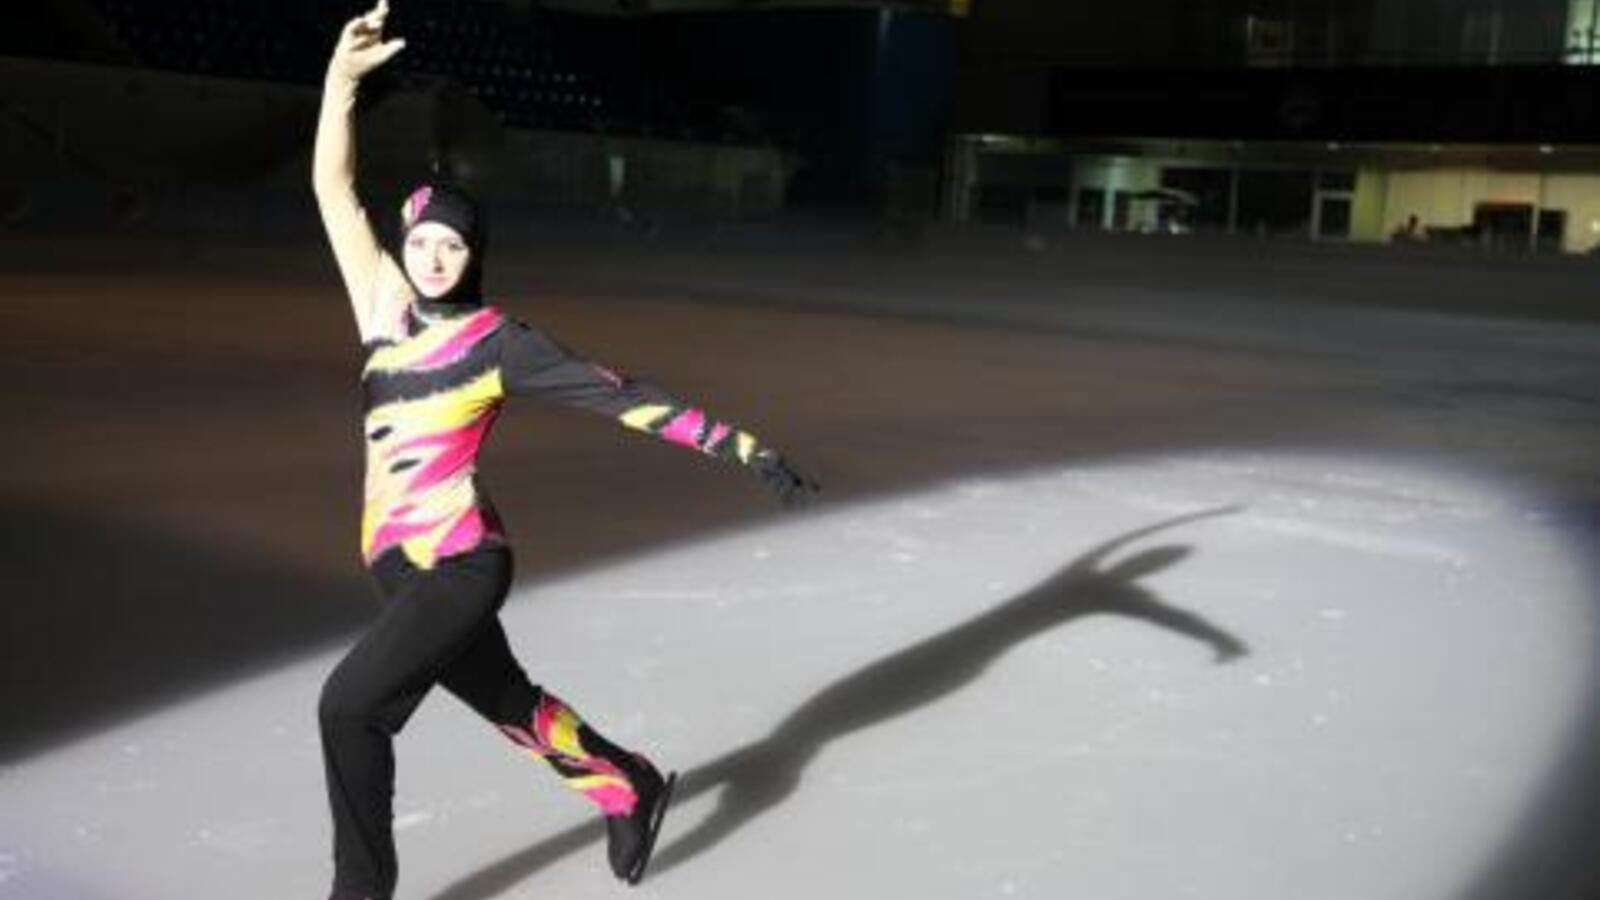 Zahra Lari picked up figure skating later in life, but has made an immediate impact on the sport